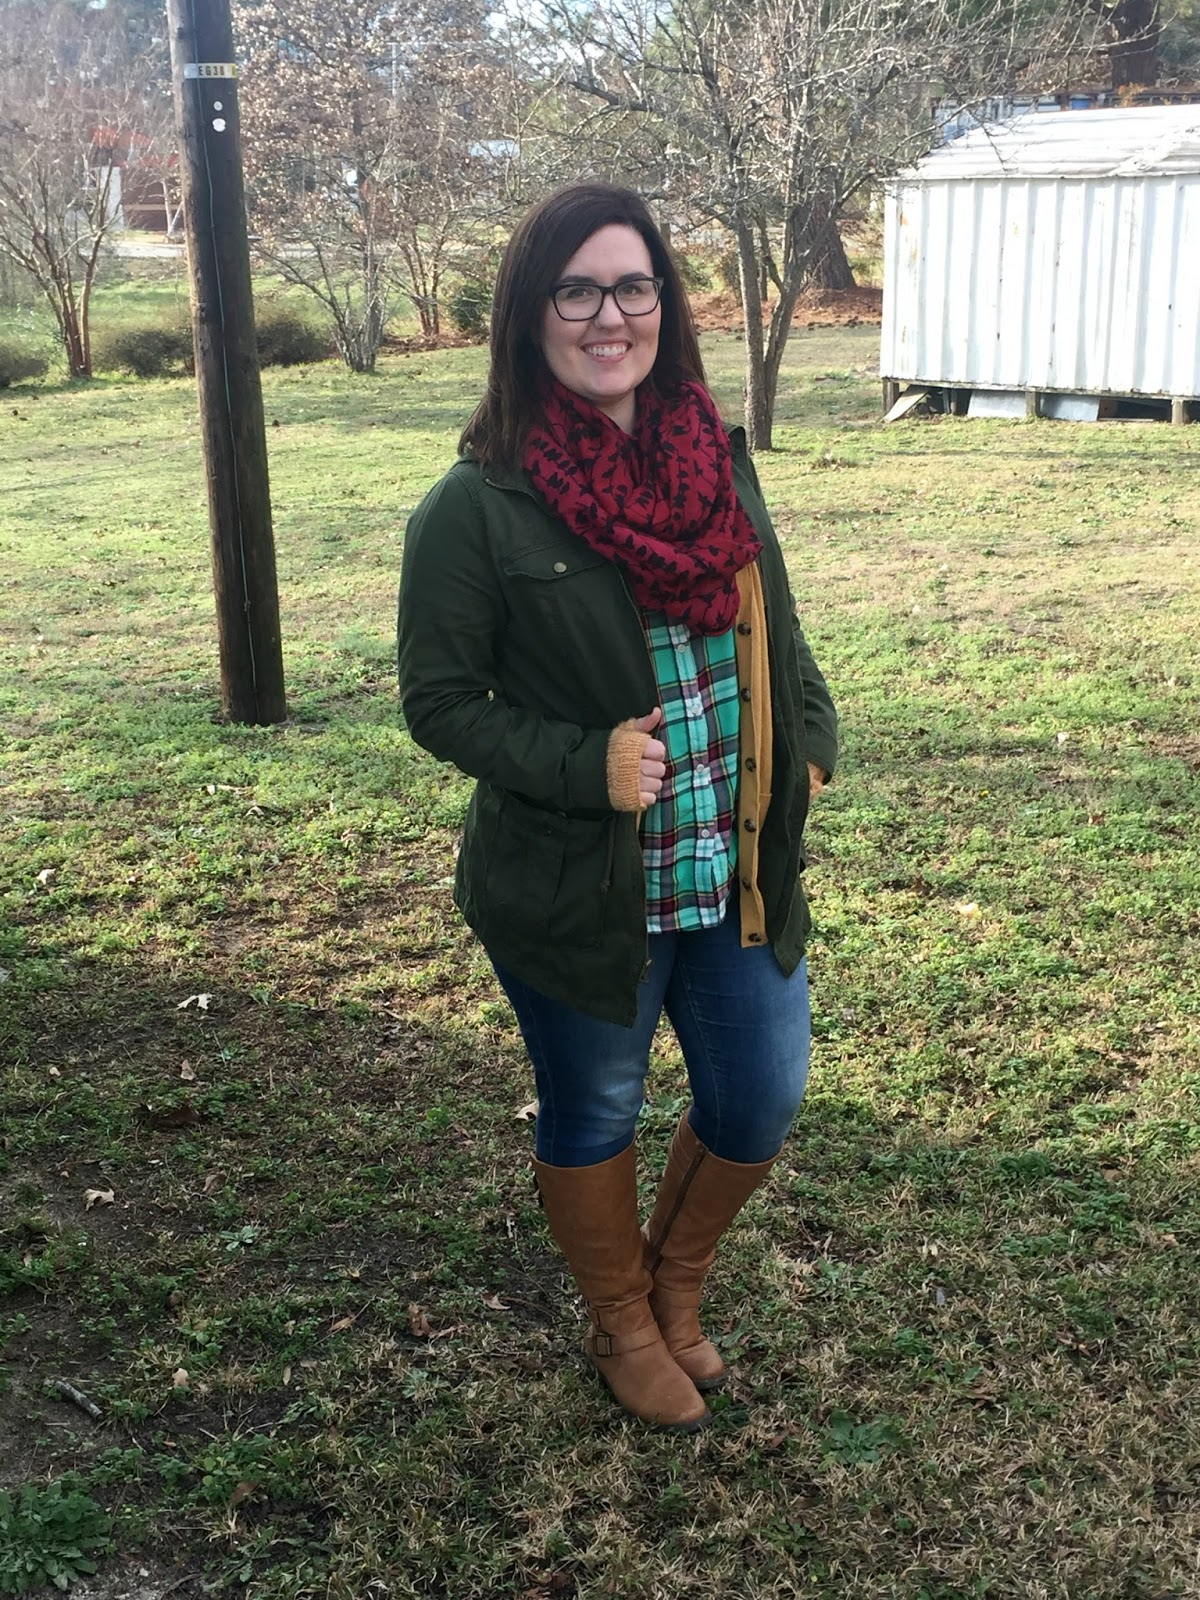 Rebecca Lately Target Plaid Top Cardigan Green Anorak Jacket